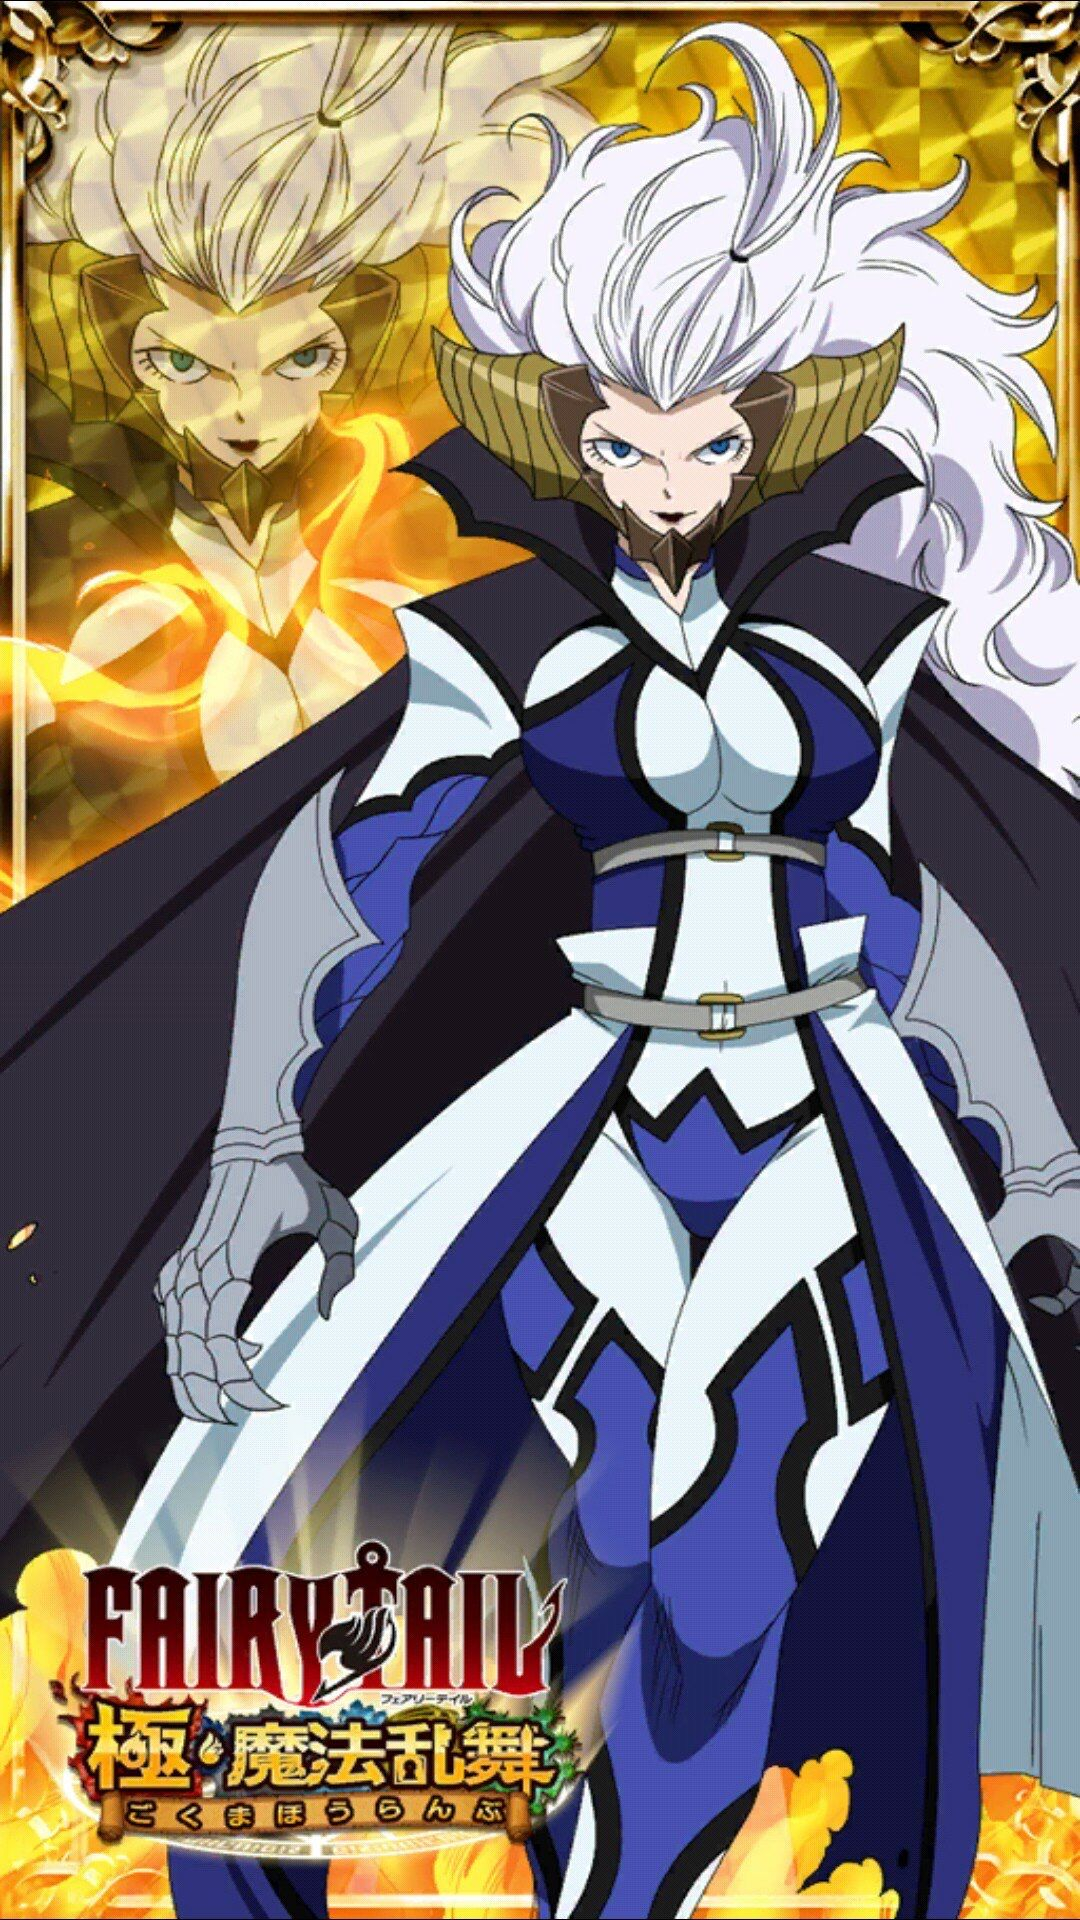 Pin On Fairy Tail Ultimate Dance Of Magic Freed was much more powerful than elfman, and easily defeated him, but even once he was down, freed kept attacking him, and was basically torturing him. pin on fairy tail ultimate dance of magic